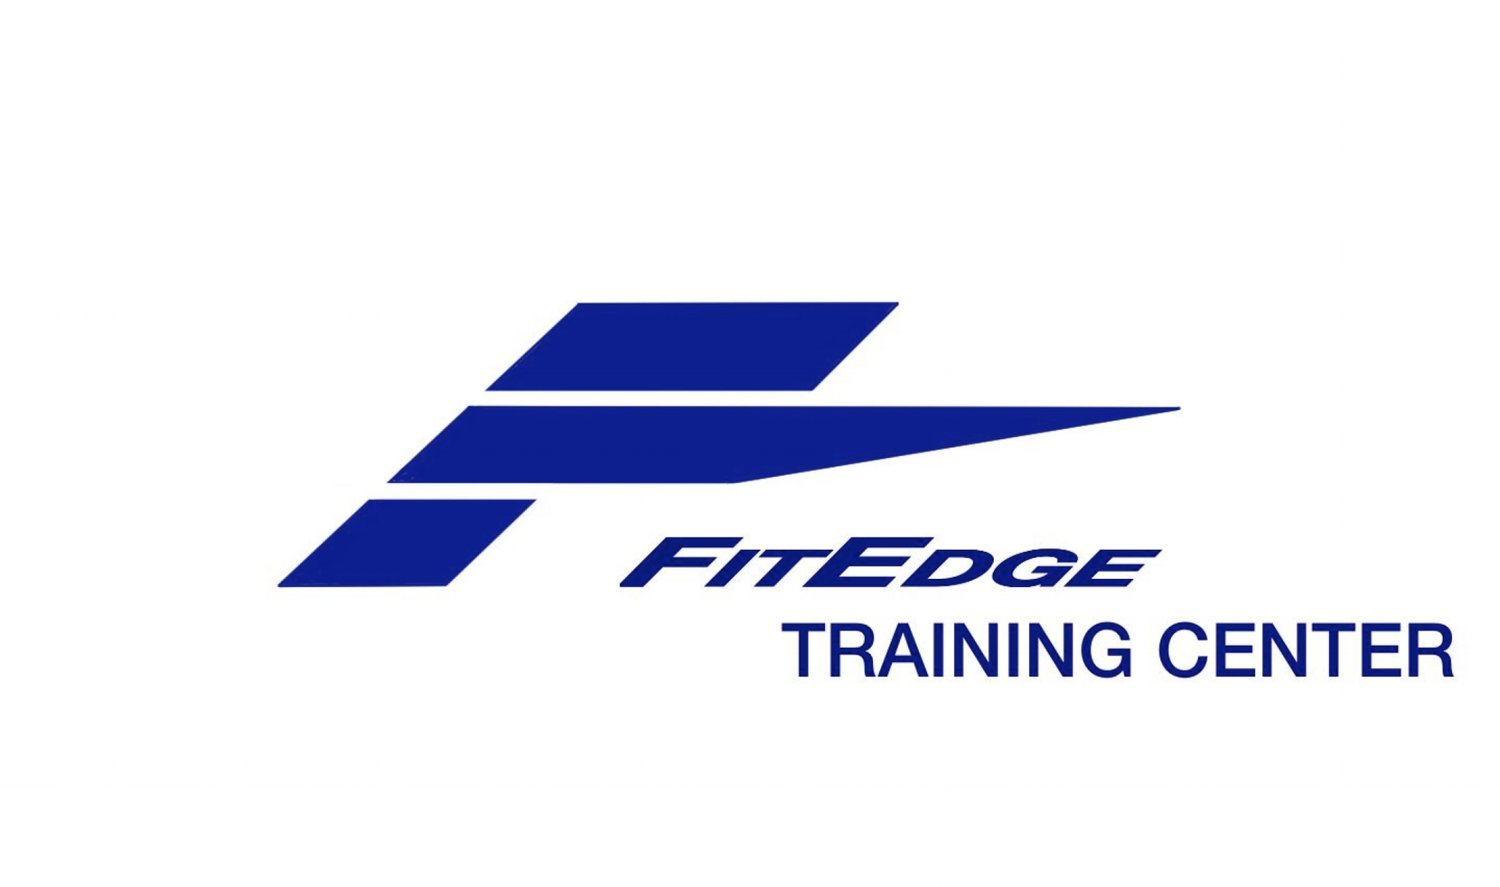 FitEdge Training Center